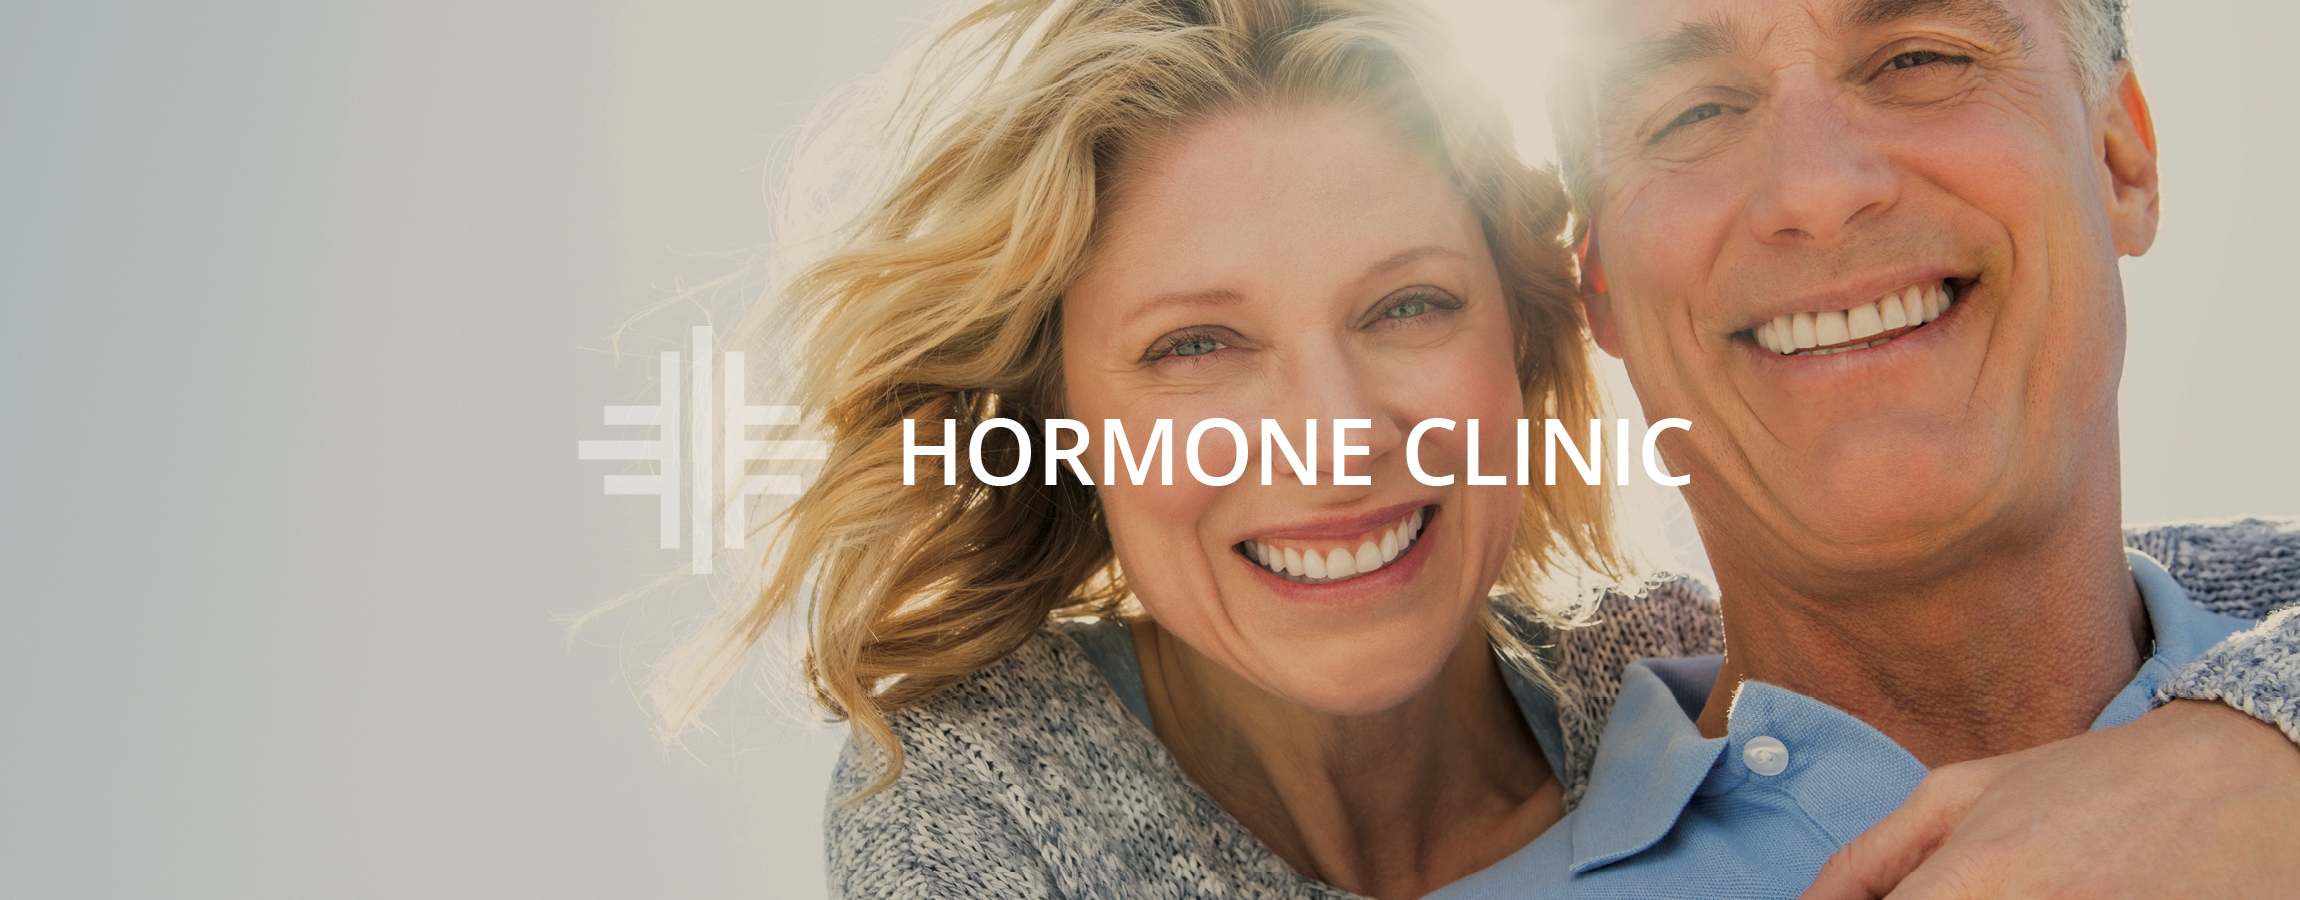 elite med hormone clinic